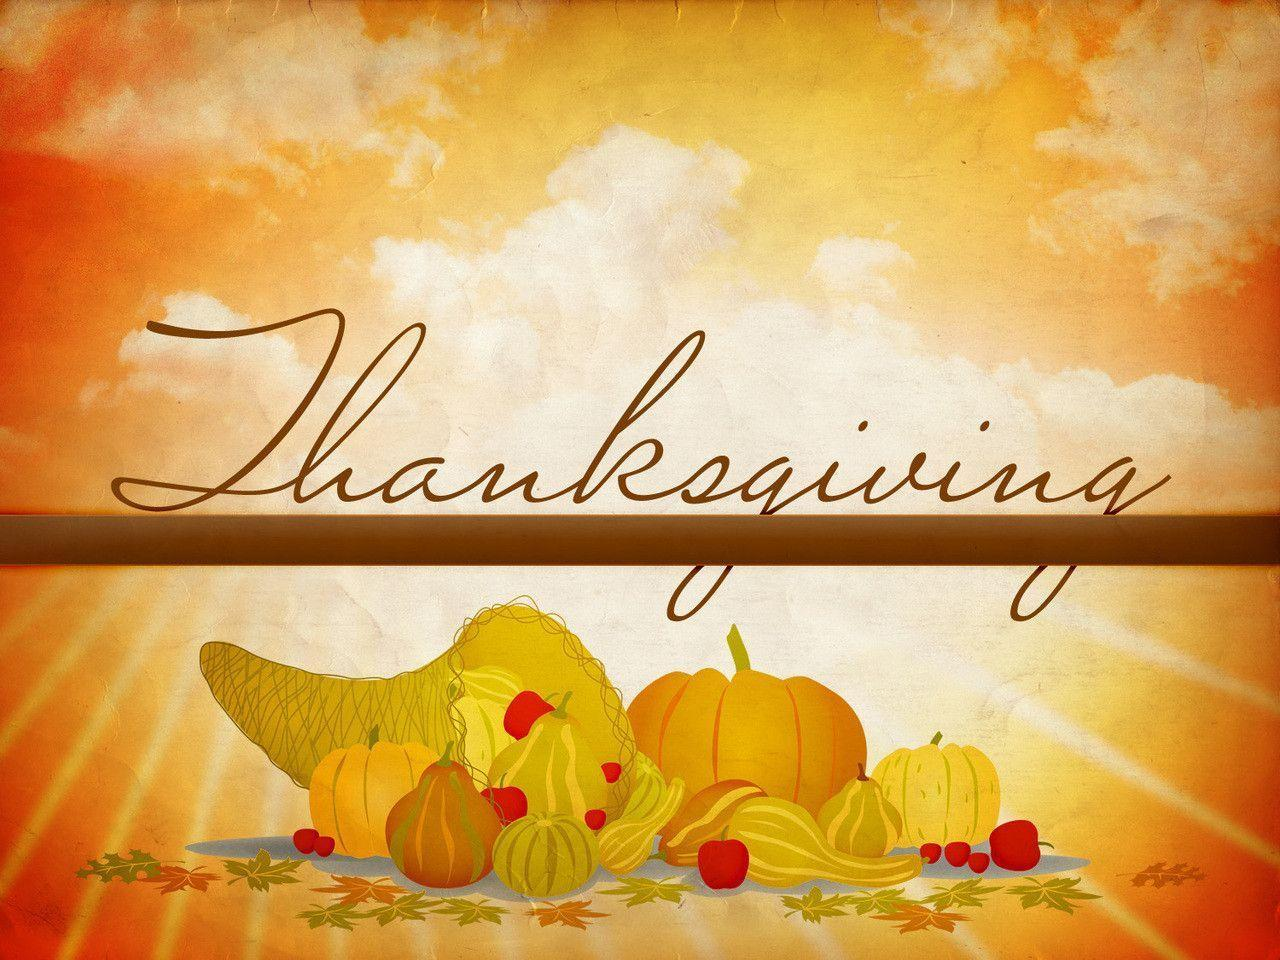 Thanksgiving Wallpaper & Backgrounds (HD & Full Width) | Happy ...